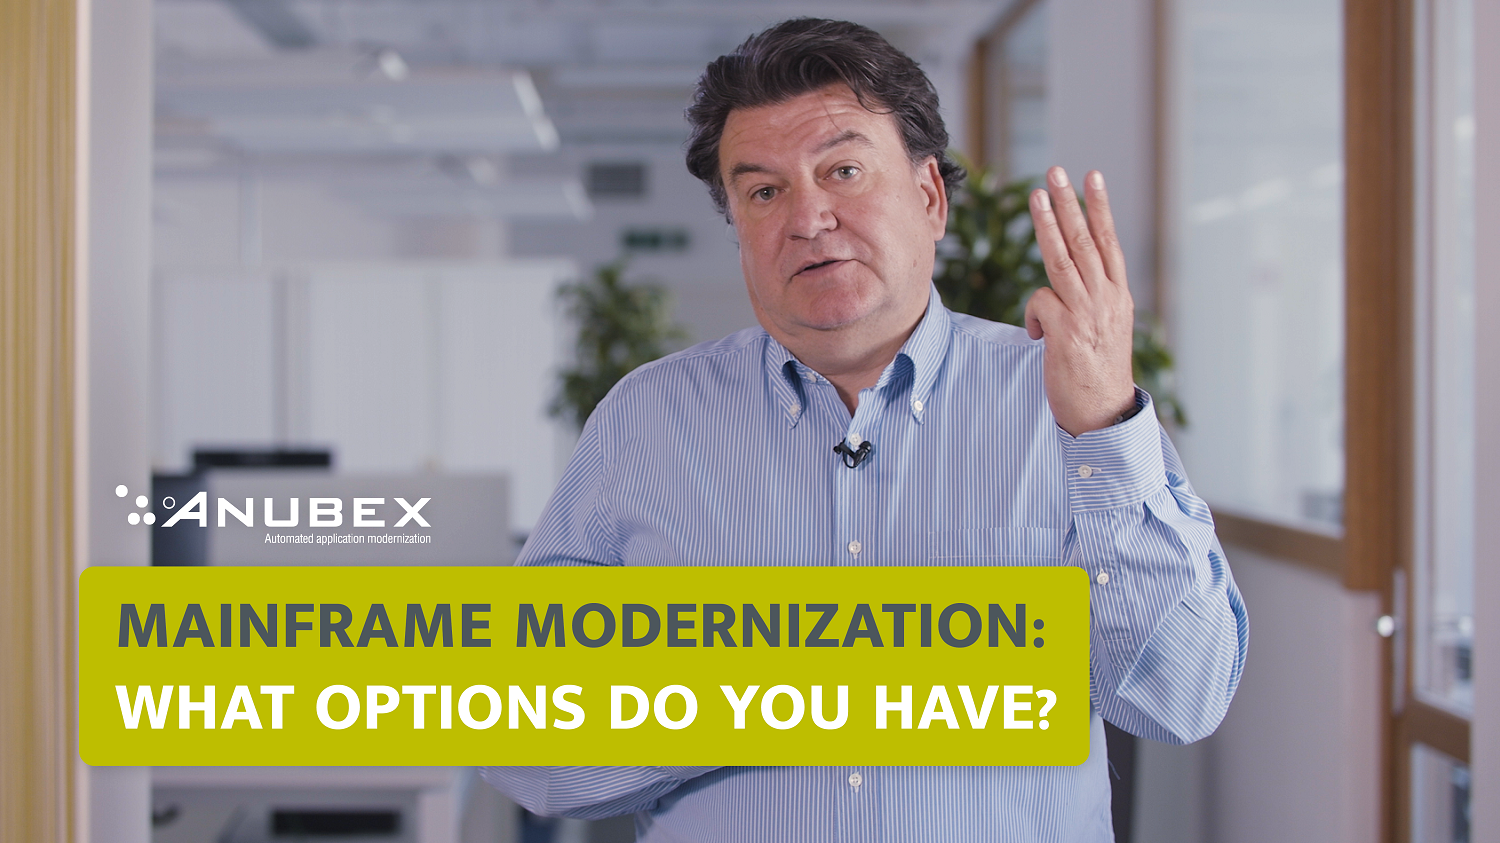 Mainframe Modernization Techniques: What Options Do You Have?